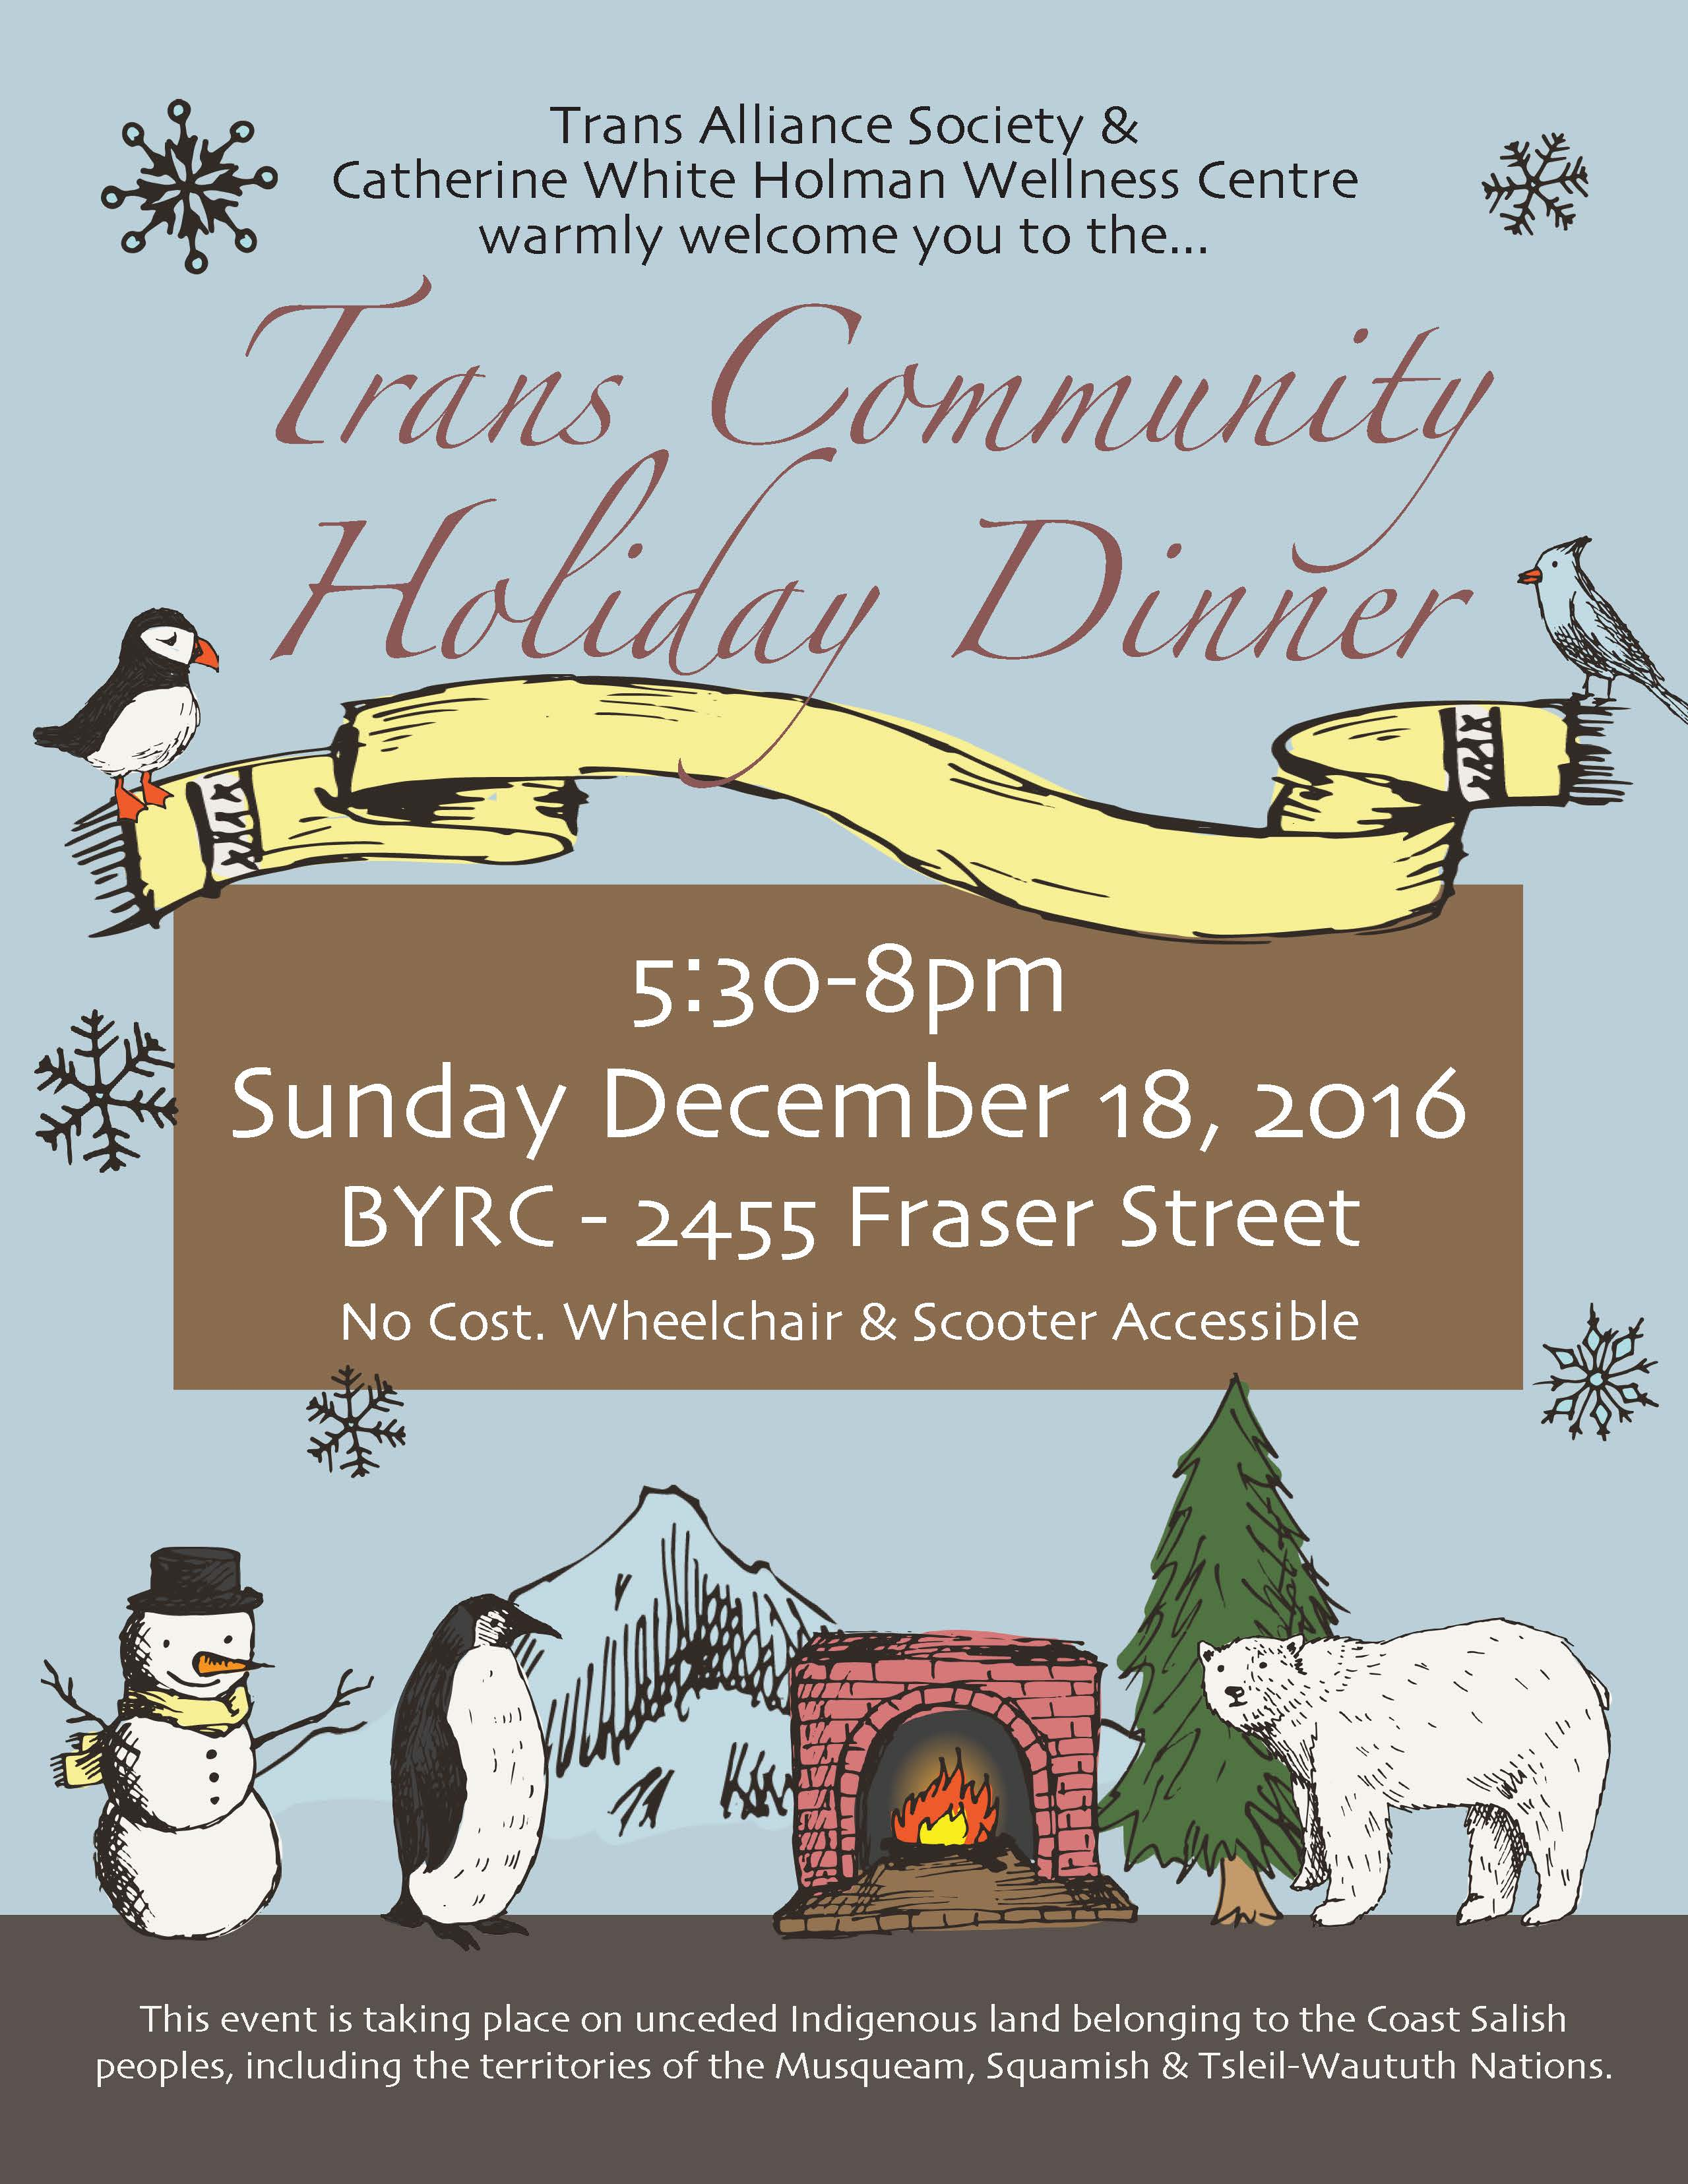 Trans Community Holiday Dinner Poster; details in following text.